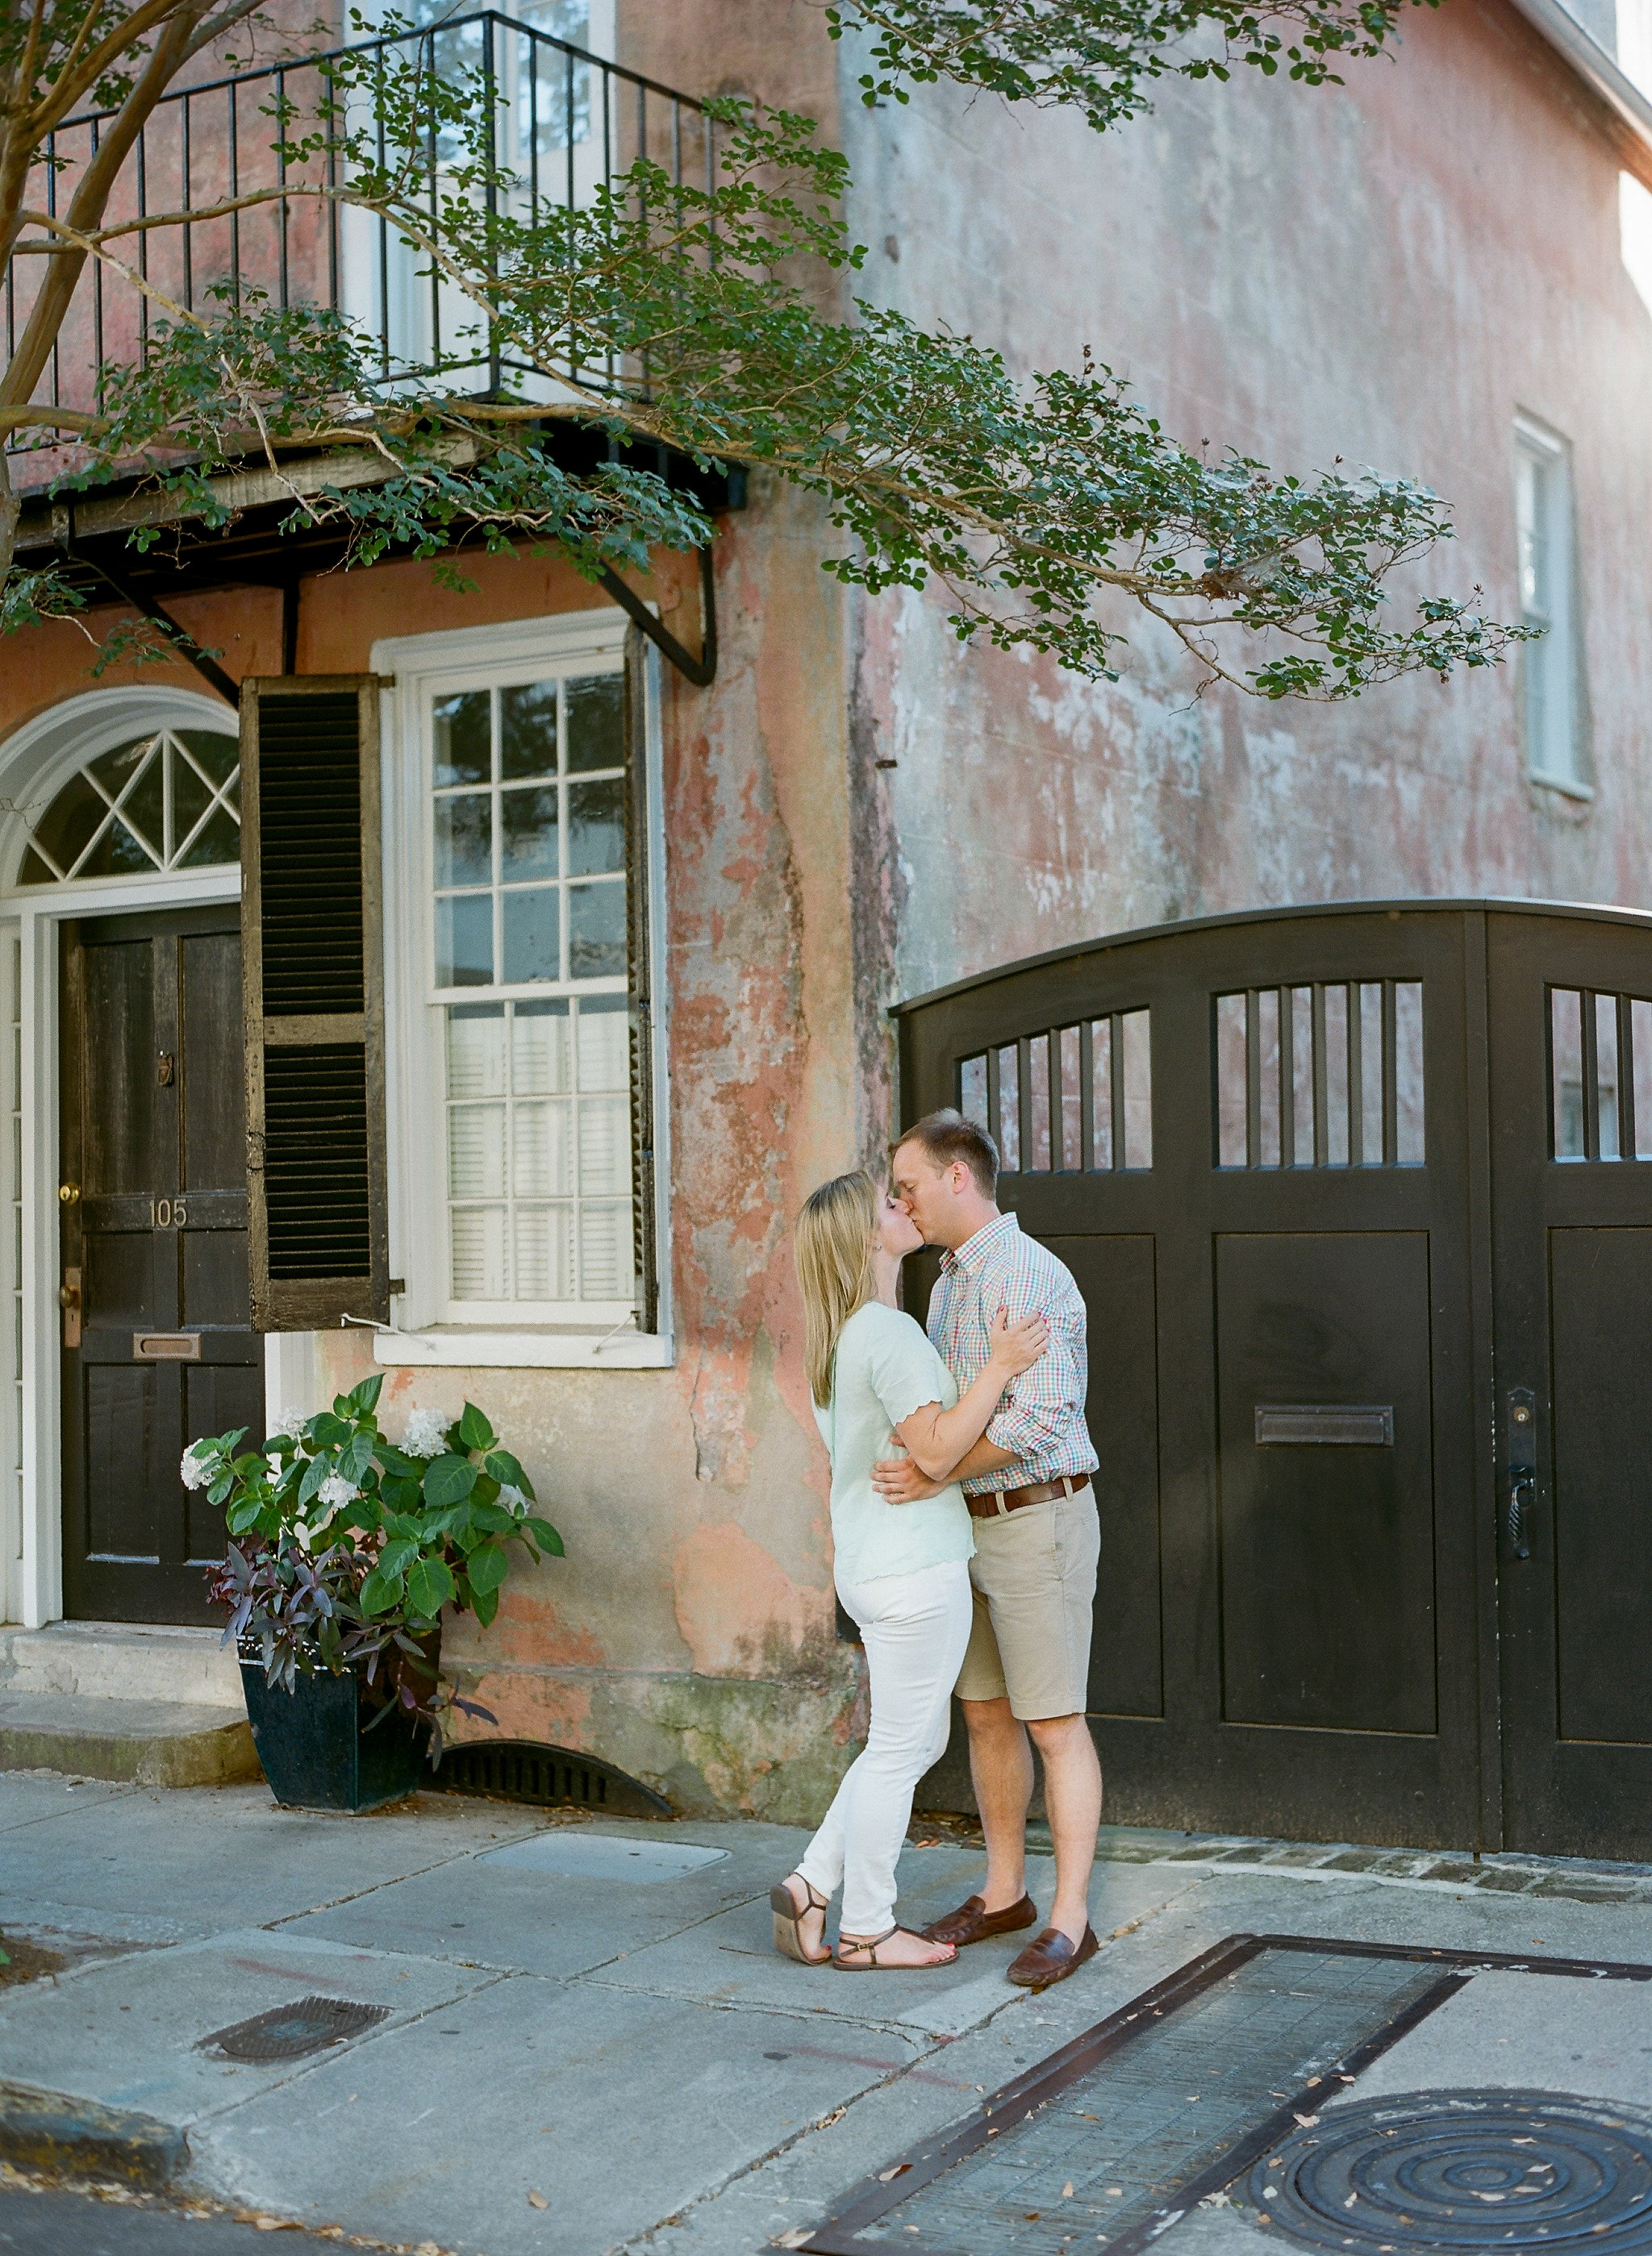 Charleston-Engagement-Photography-Lauren-Jonas-Josh-Lauren-6.jpg